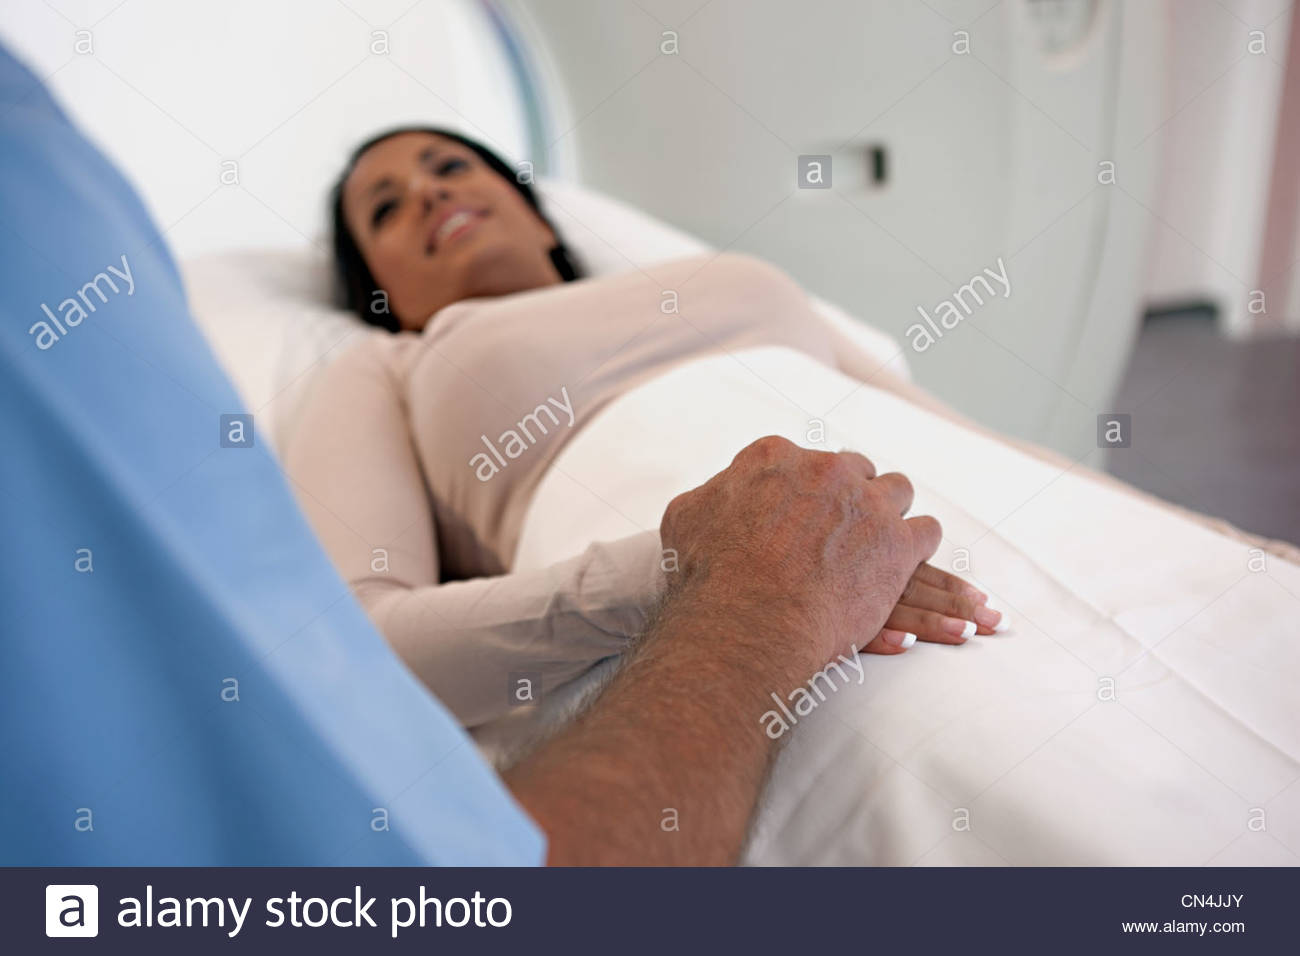 CT scan patient being reassured - Stock Image